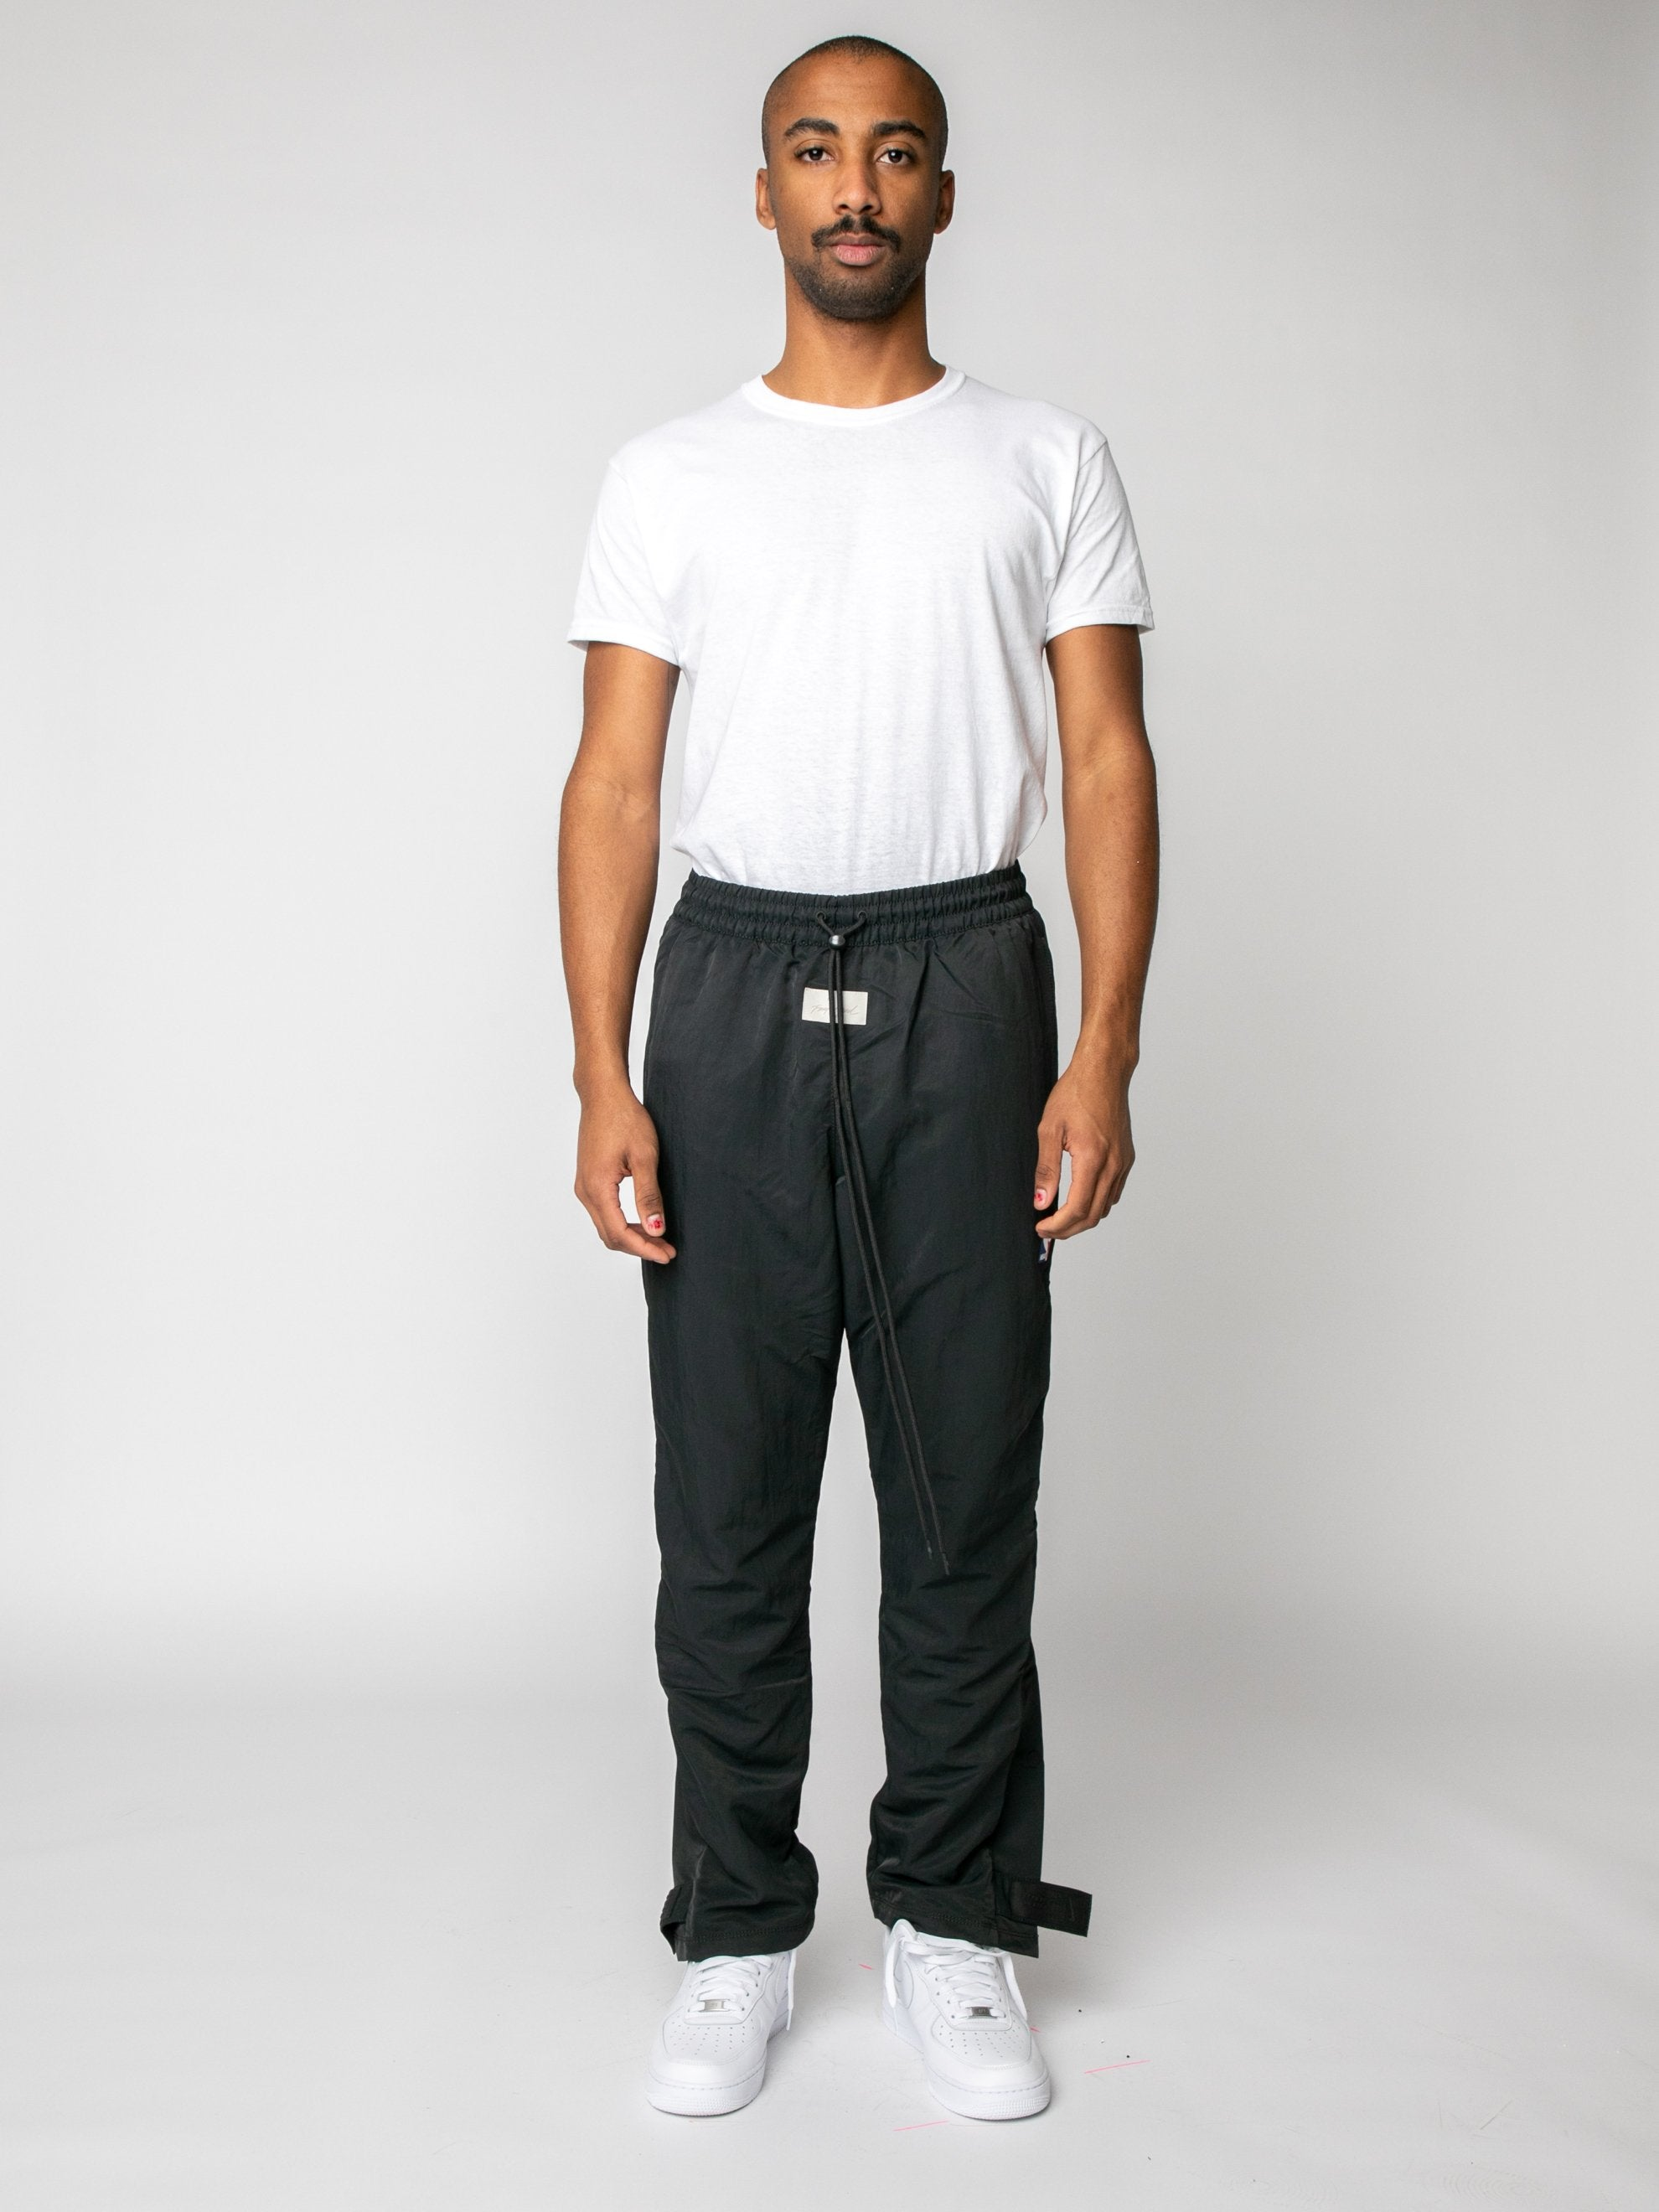 Off Noir Nike x Fear Of God Warm Up Pant 3